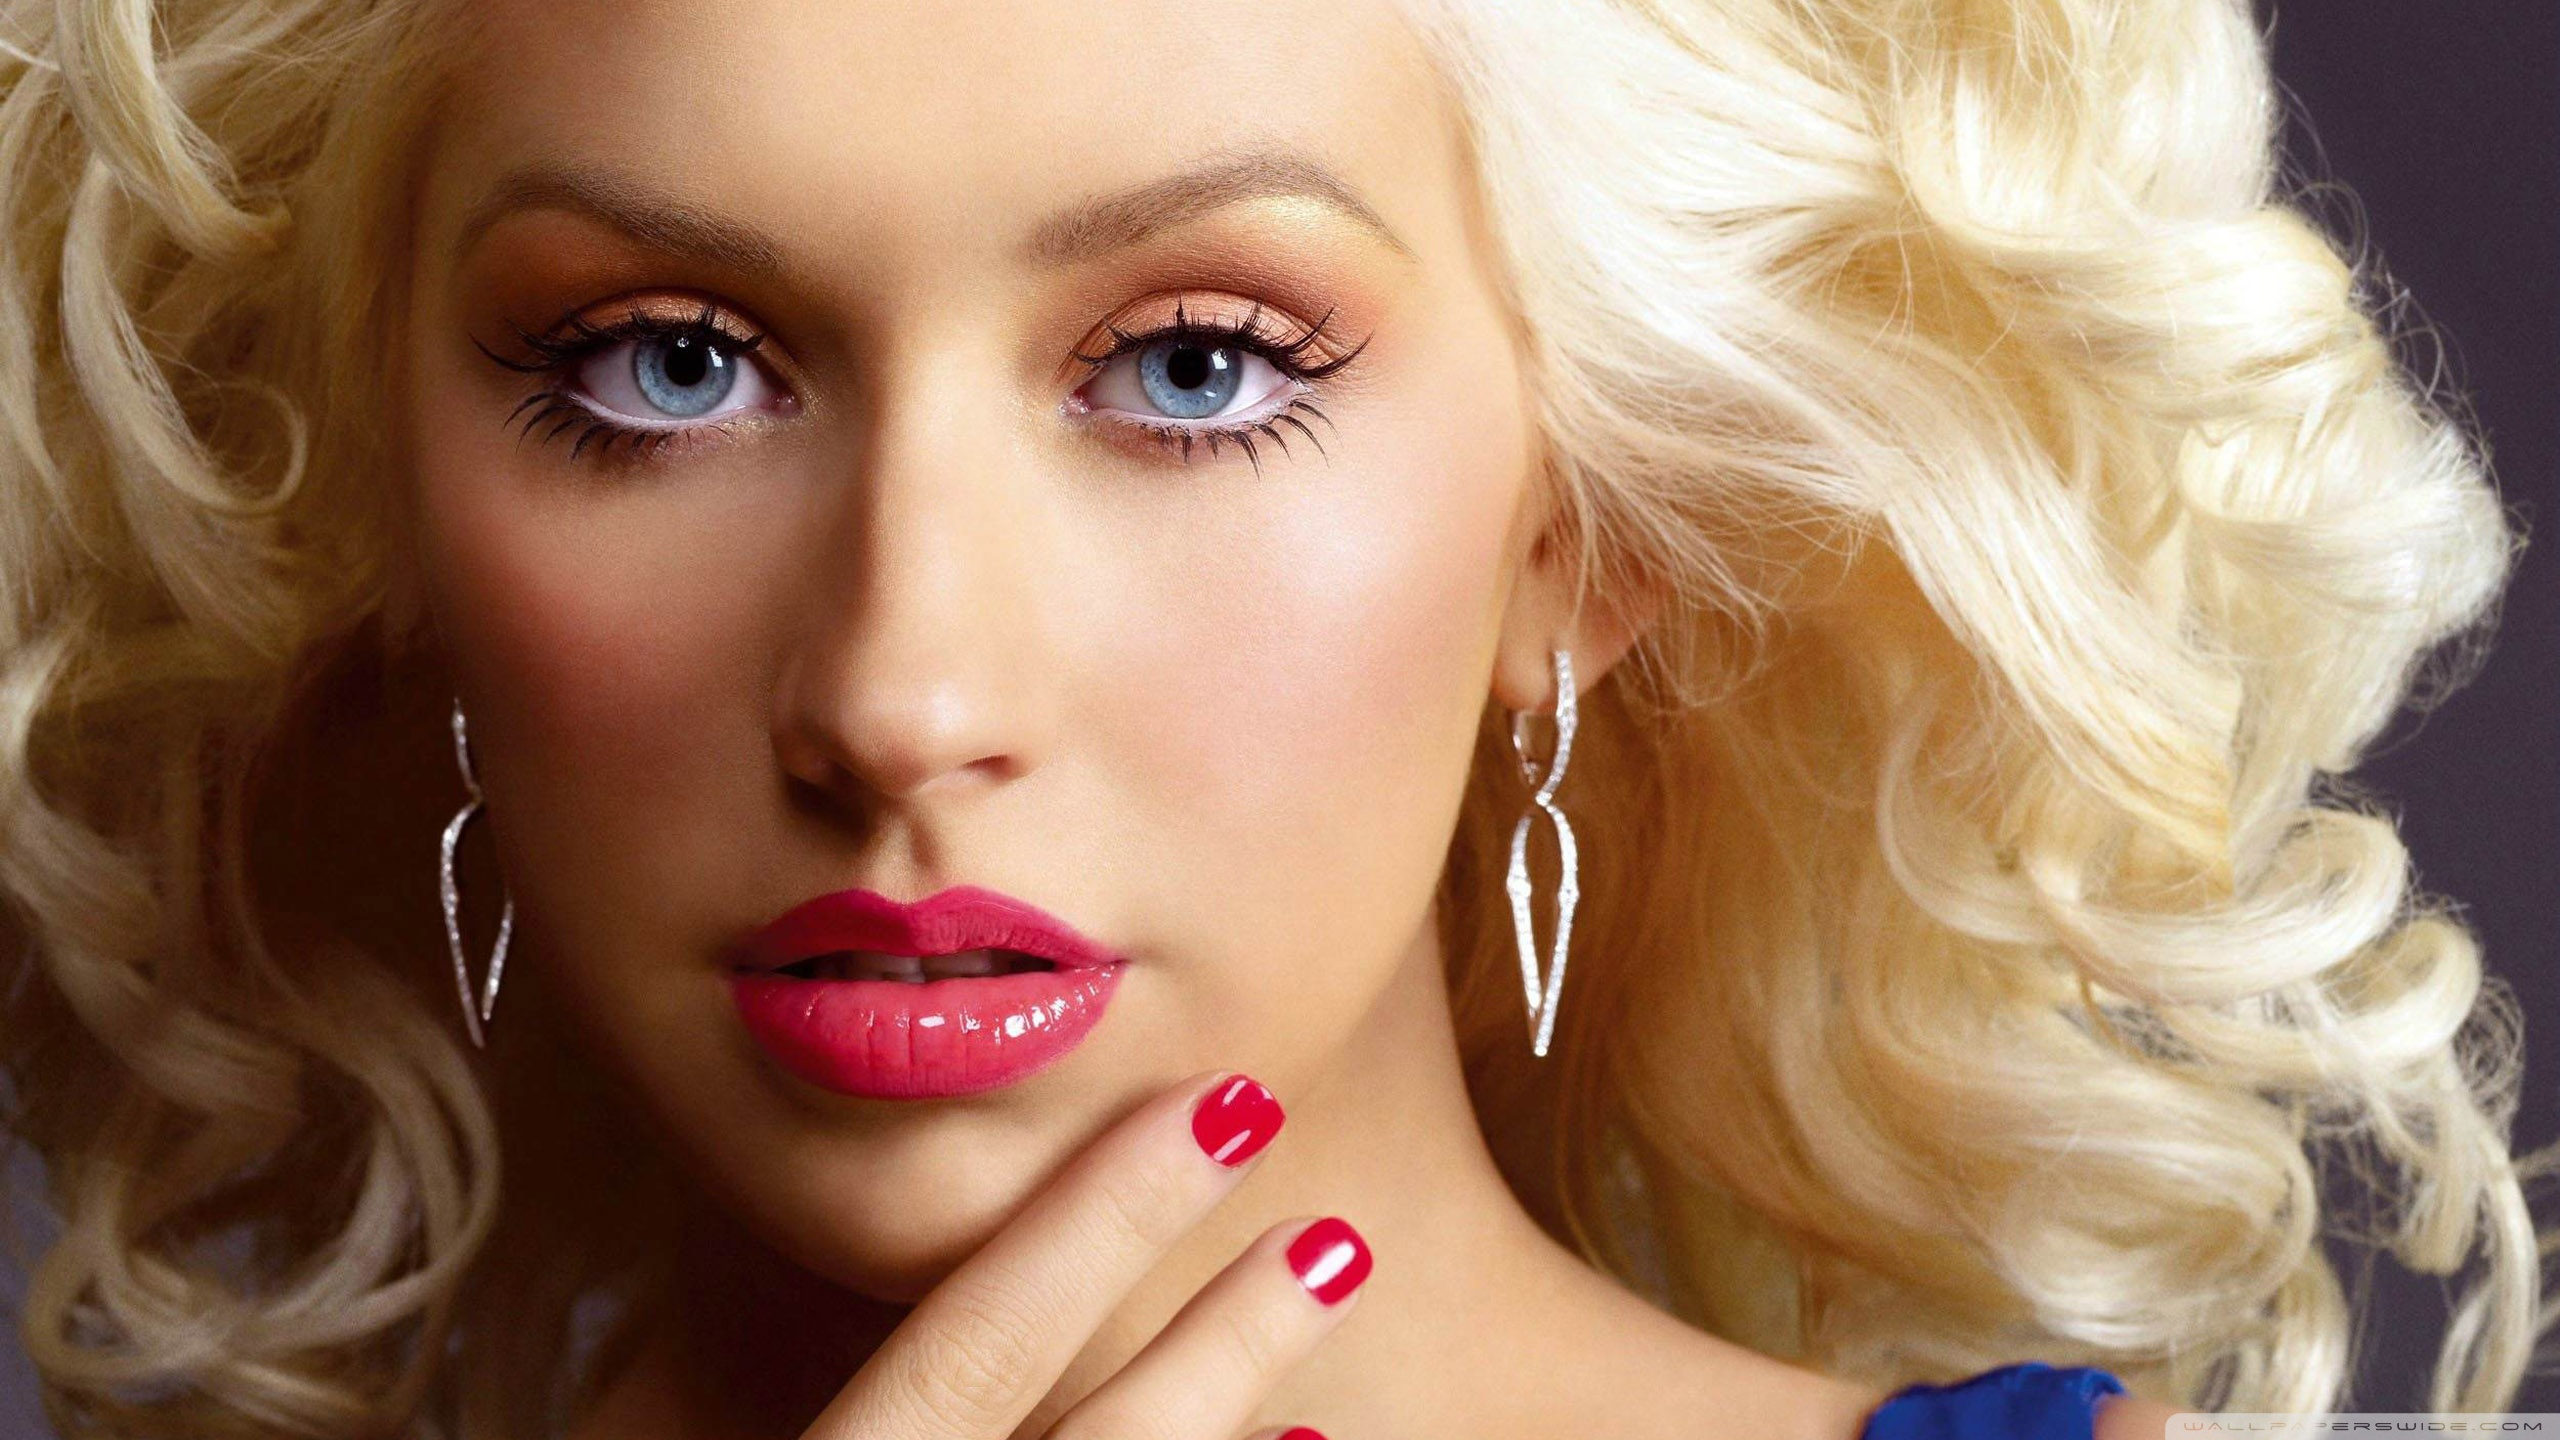 Christina Aguilera 4K HD Desktop Wallpaper for 4K Ultra HD TV 2560x1440